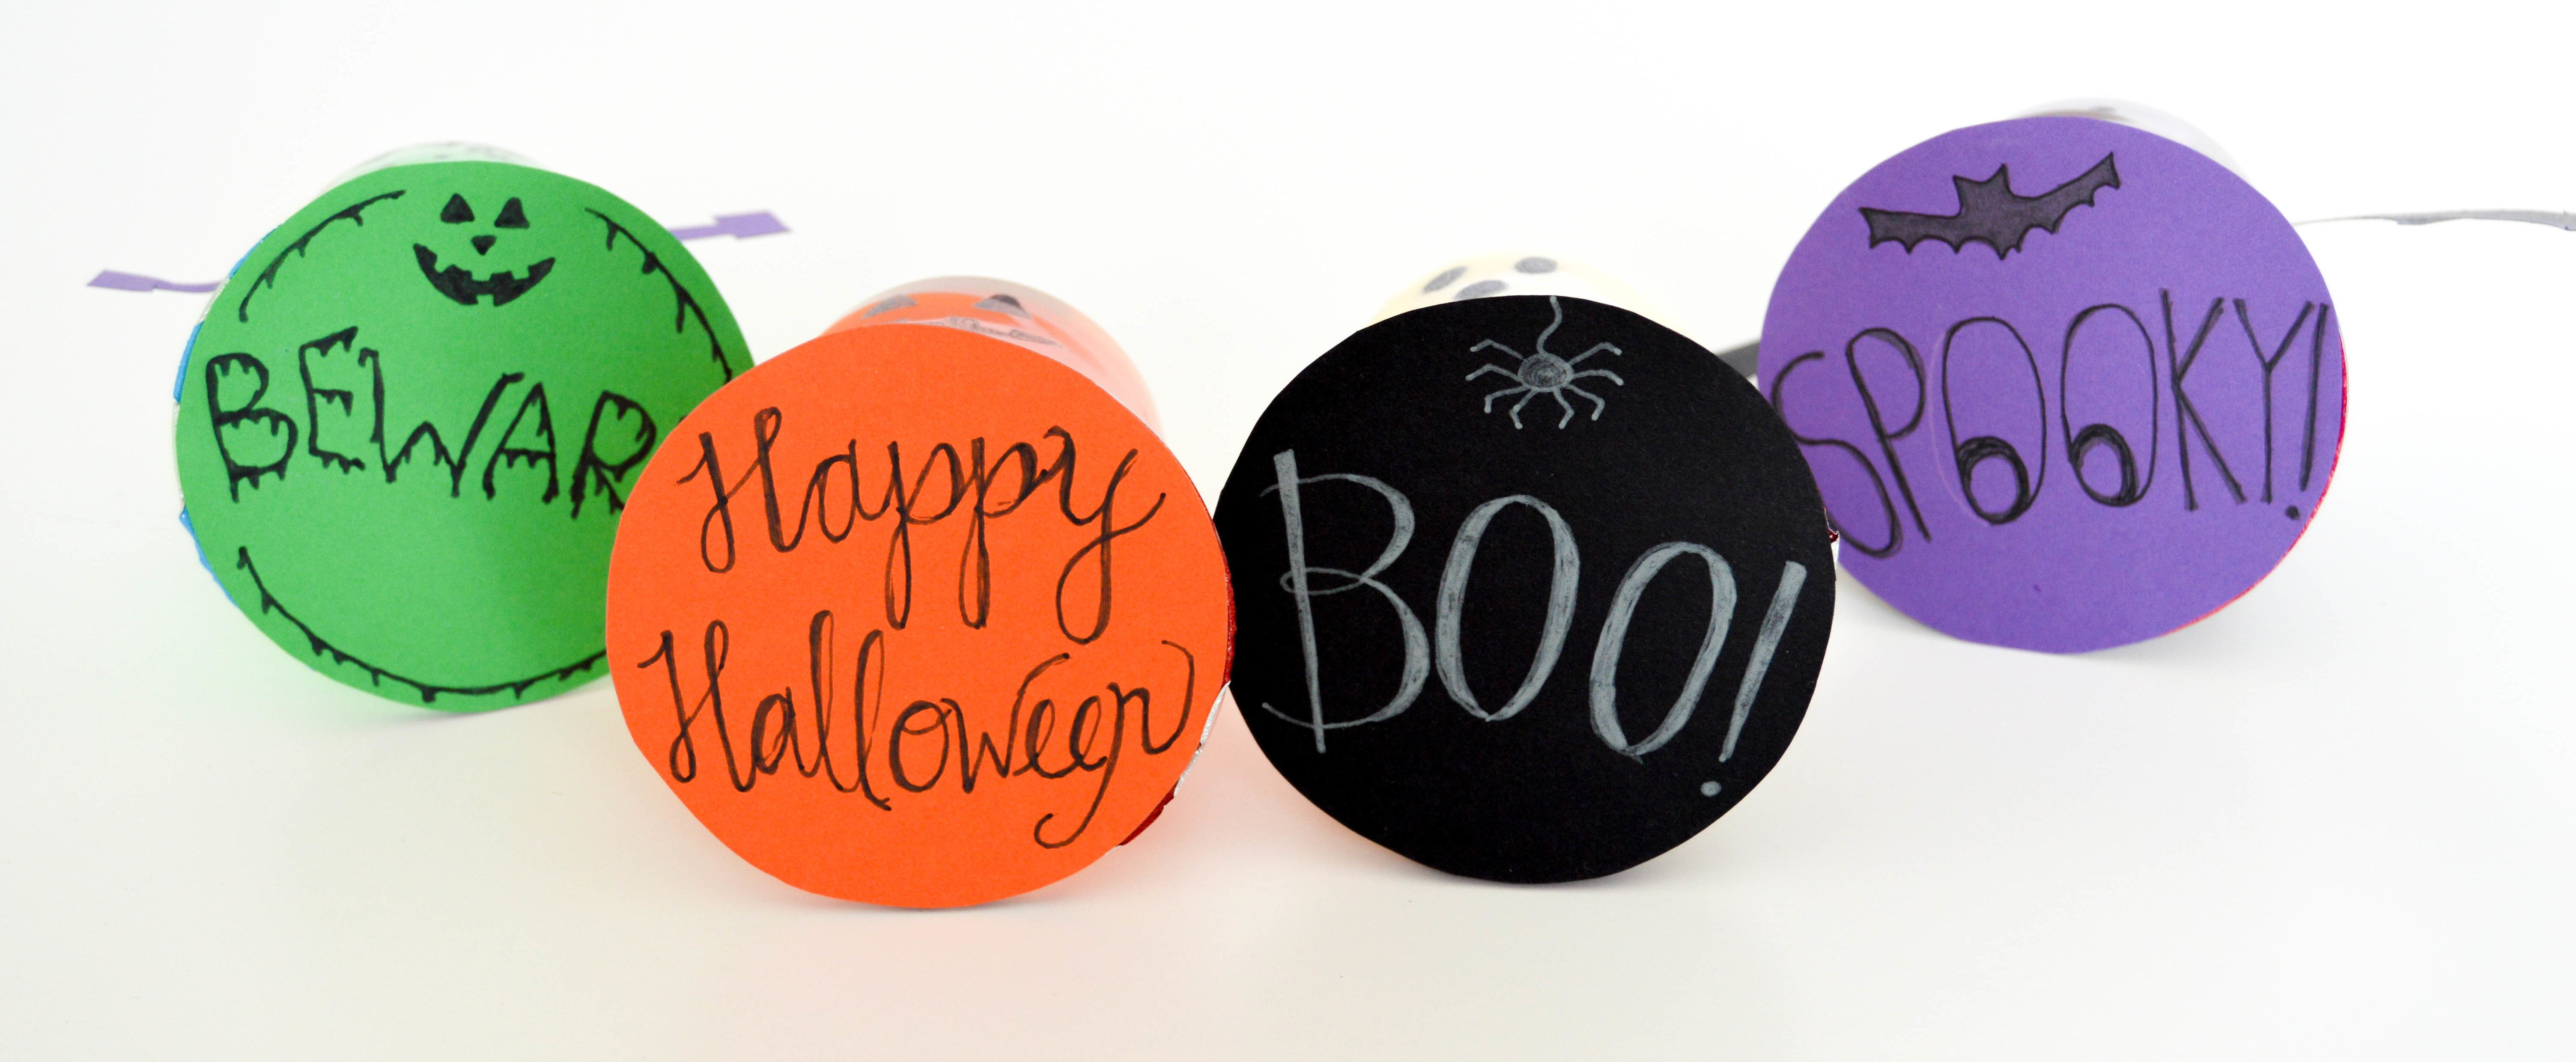 Halloween Pudding Cups & Jello Cups | Beware! Happy Halloween! Boo! Spooky! Tags for my ghost, pumpkin, bat, and Frankenstein pudding cups and jell-o cups.